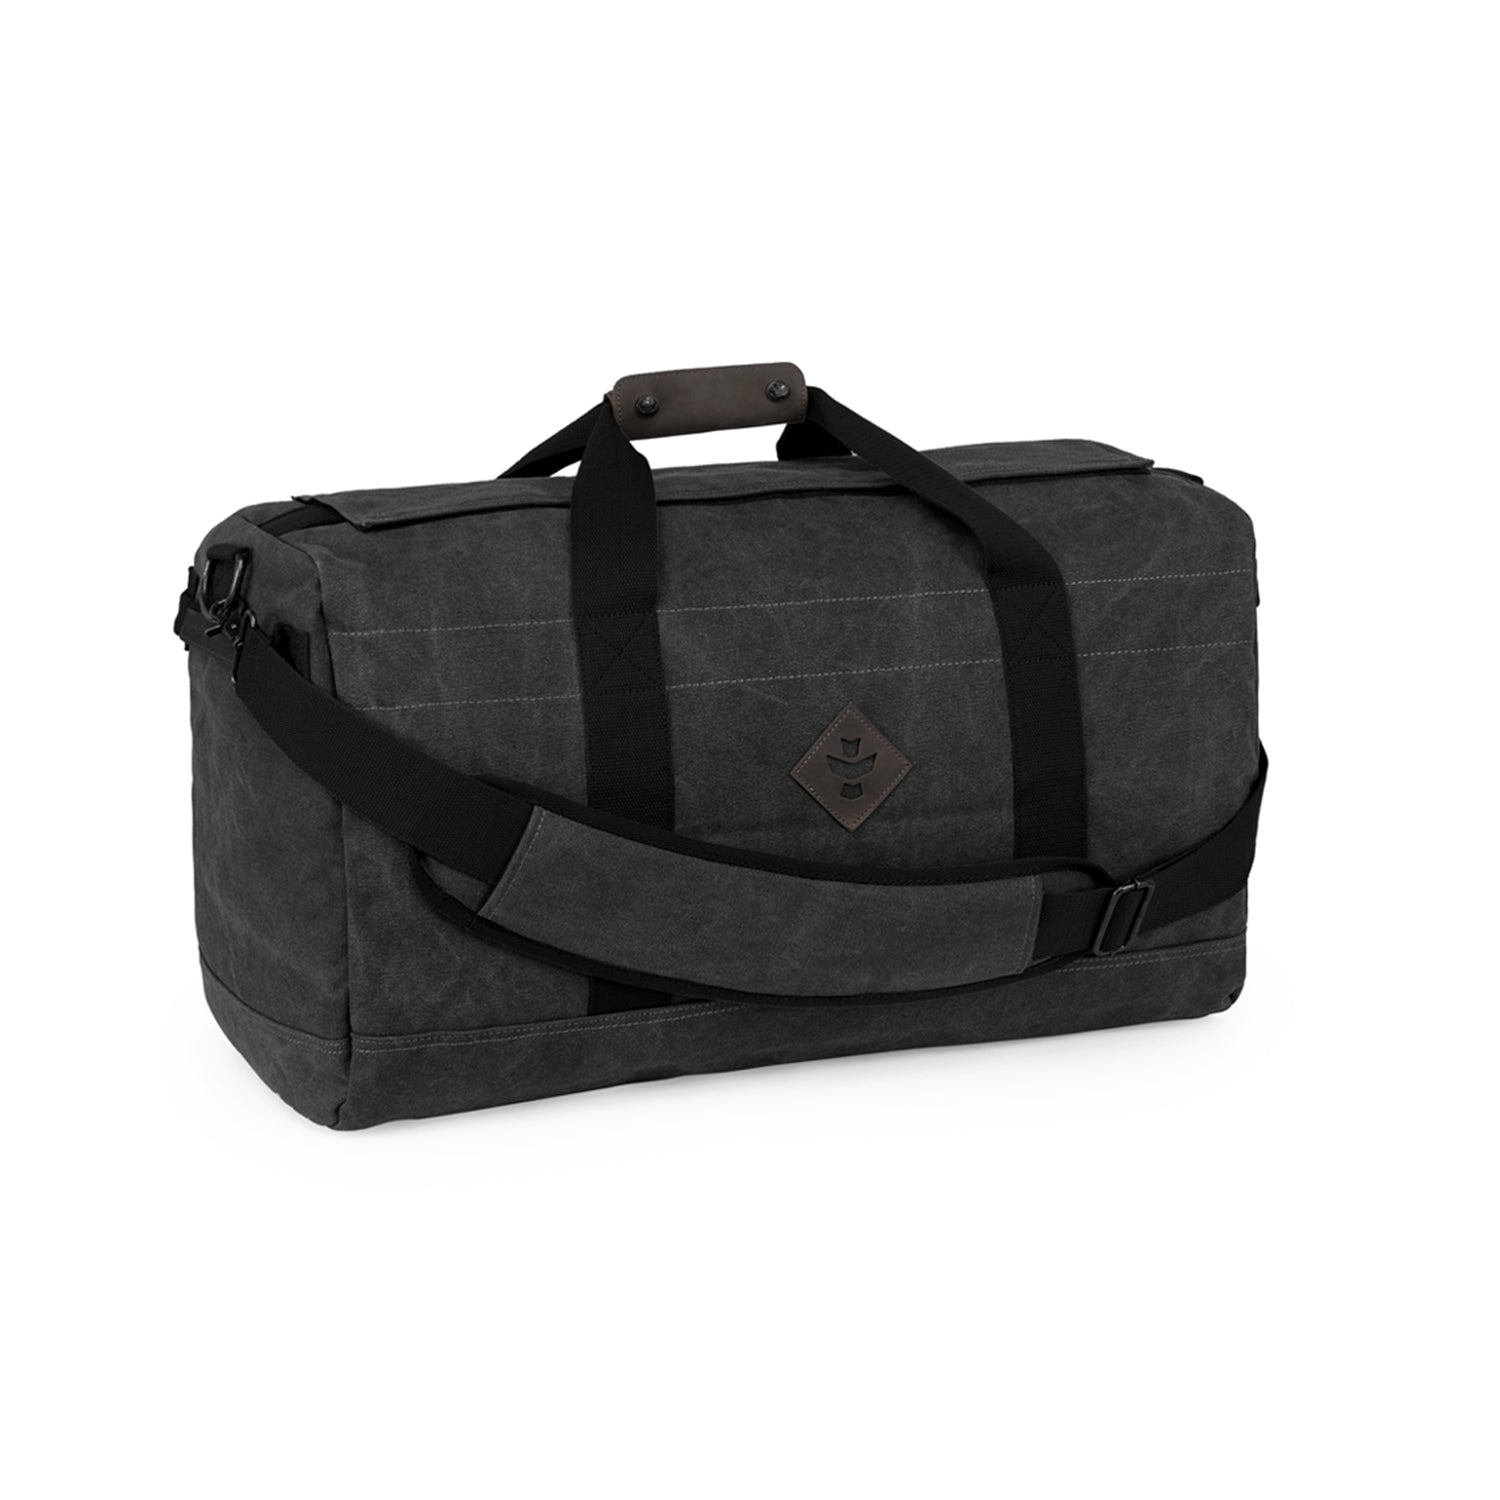 Smoke Canvas Smell Proof Water Resistant Medium Duffle Bag